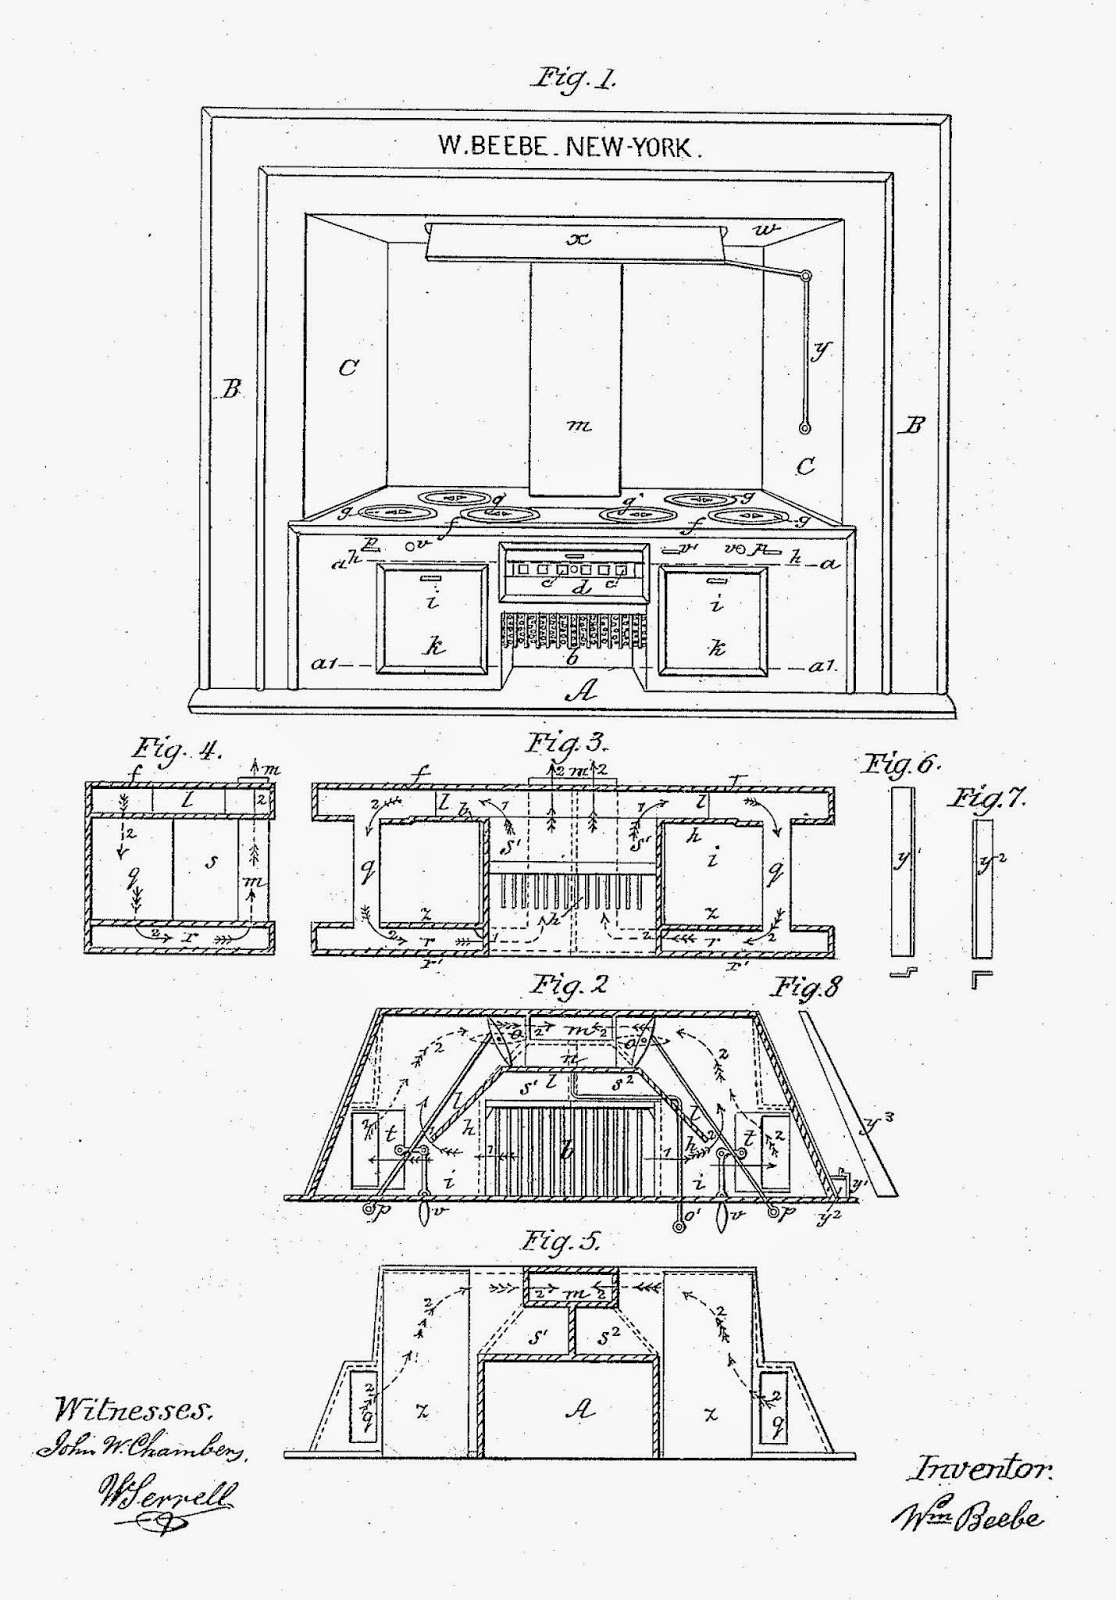 a stove less ordinary  new york city stove inventors  u0026 their inventions  1795